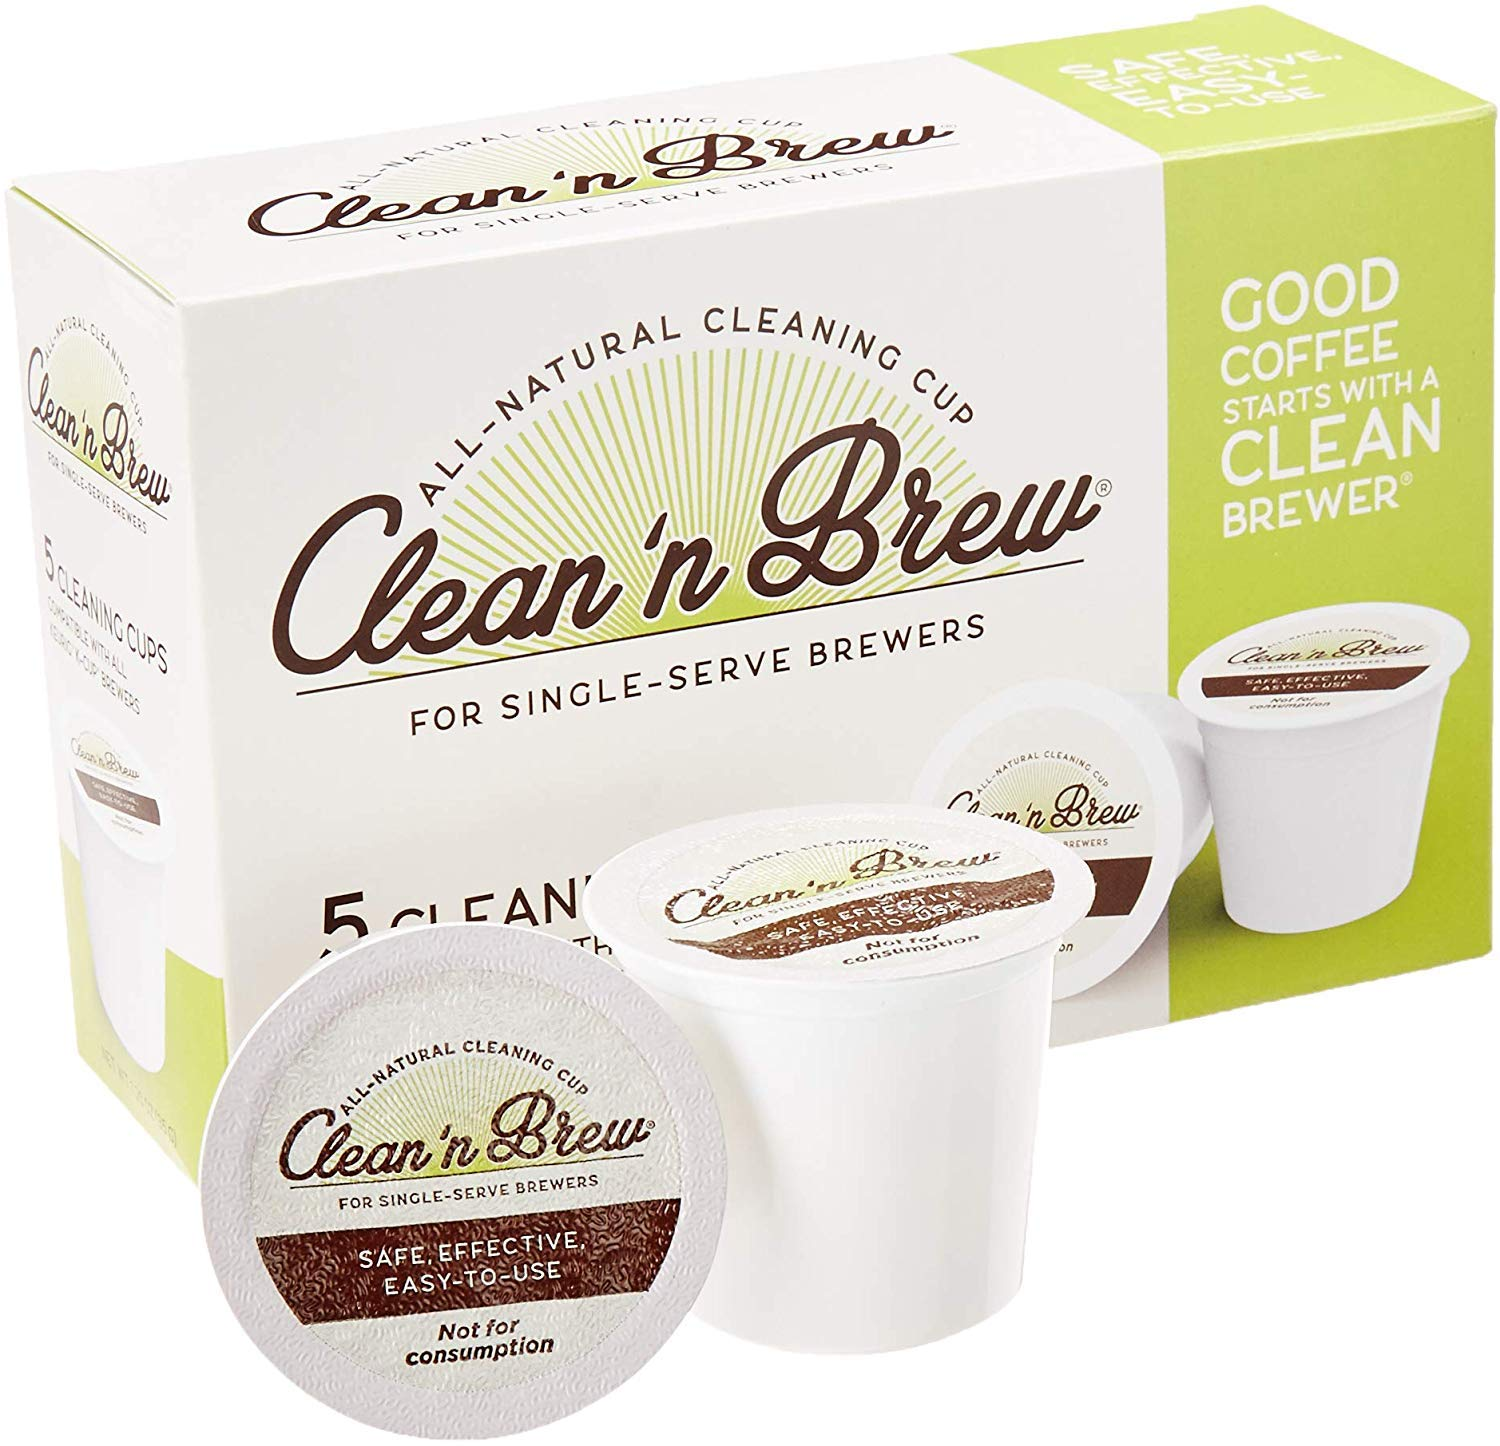 Clean 'N Brew nur All-Natural Cleaning Cups für Keurig K-Cup Machines - Compatible mit Keurig 2.0, Removes Stains, Non-Toxic, nicht Harsh Chemicals